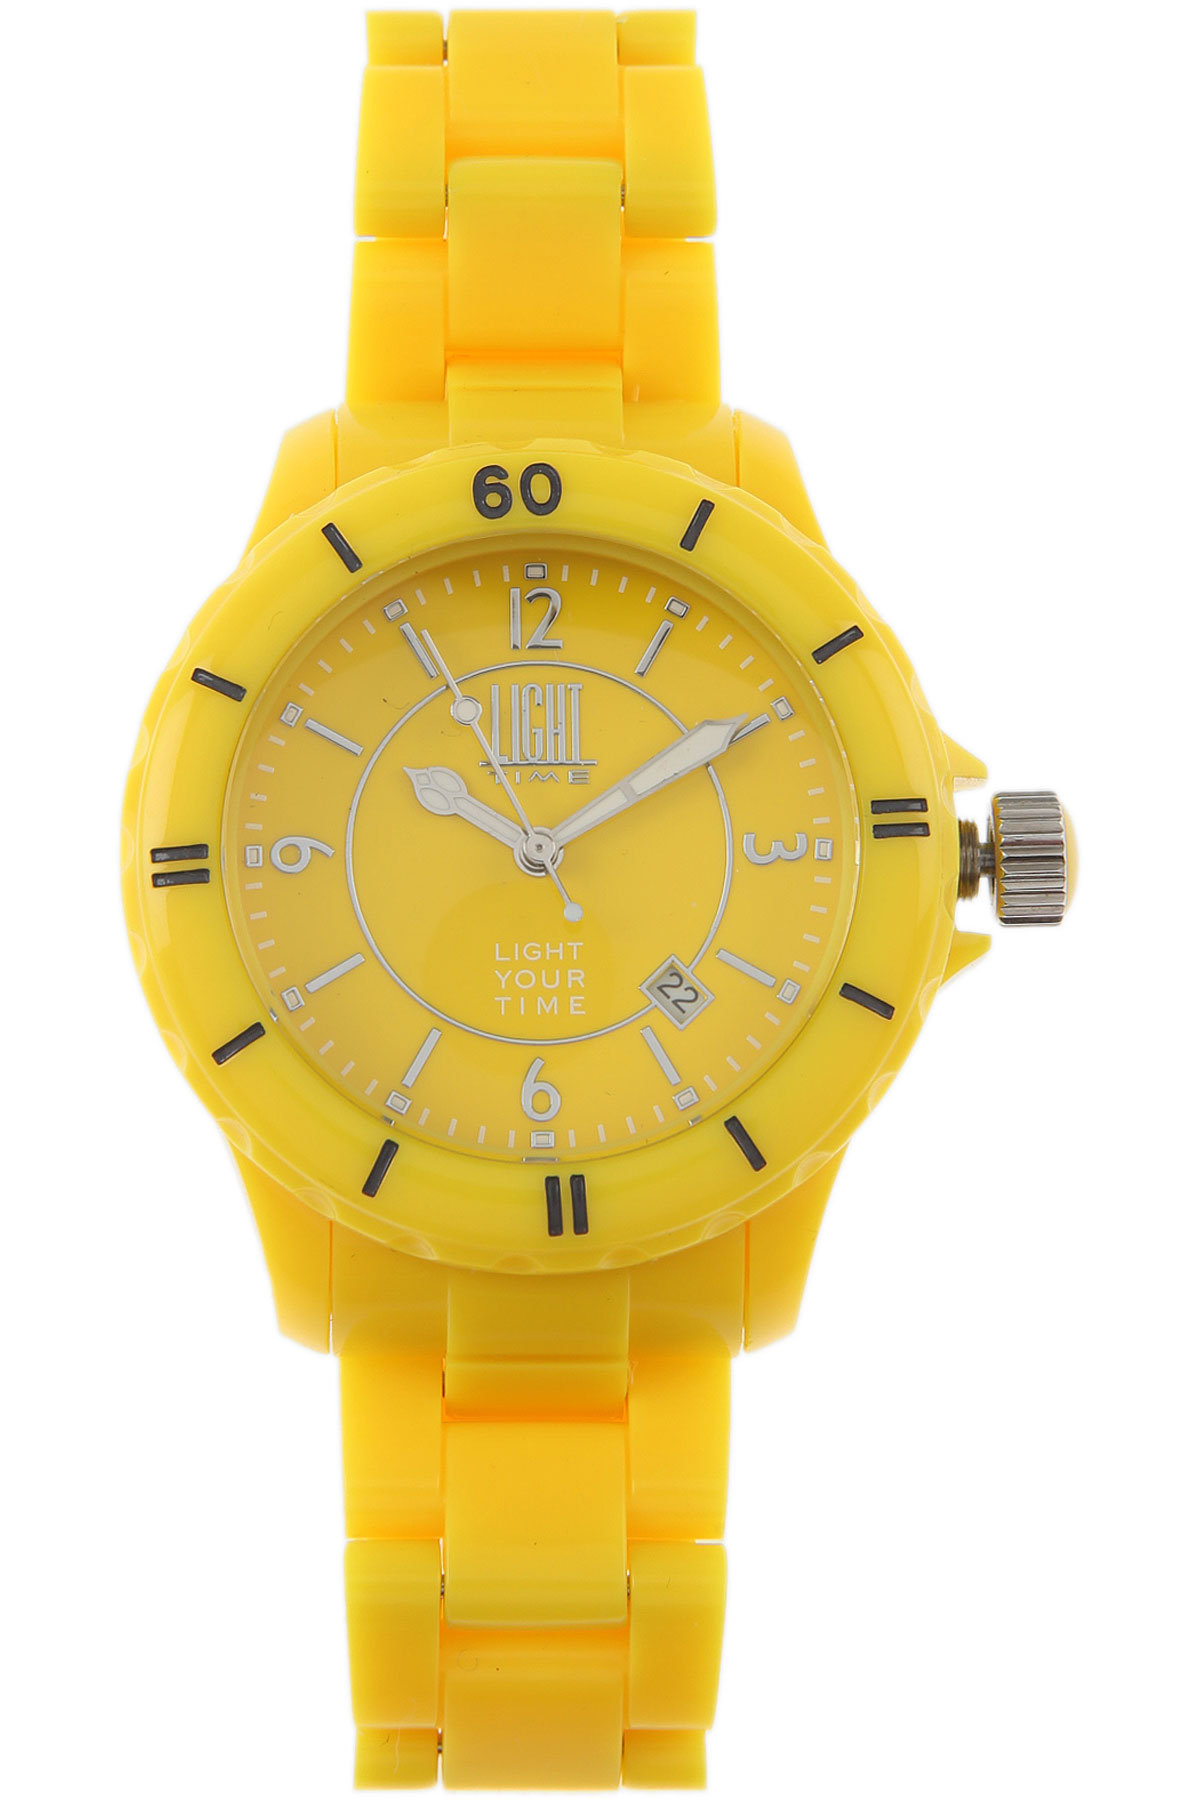 Image of Light Time Watch for Women, Yellow, Polycarbonate, 2017